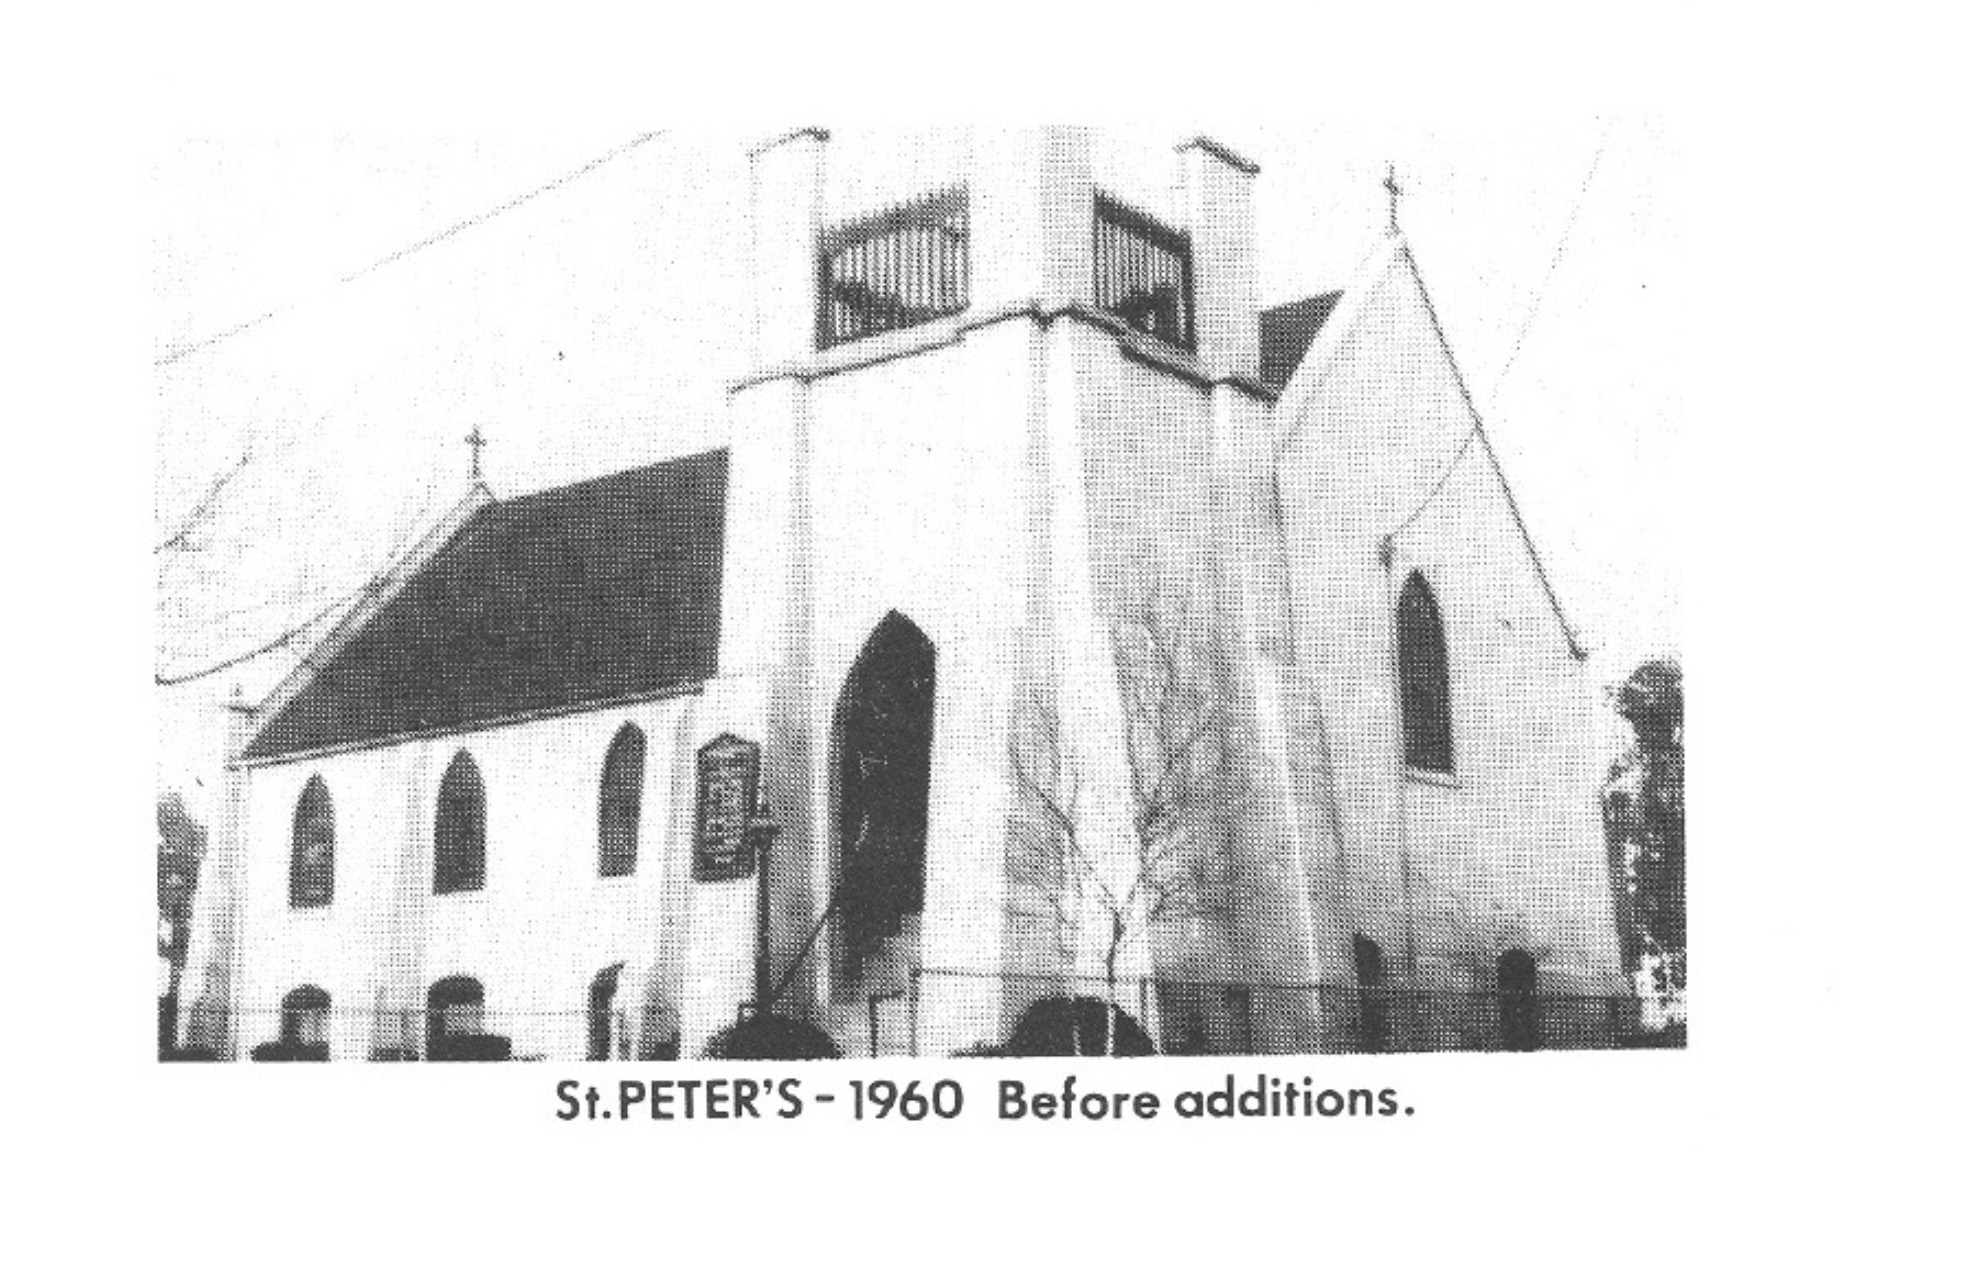 Microsoft Word - St. Peter's 1960 Before Additions.doc